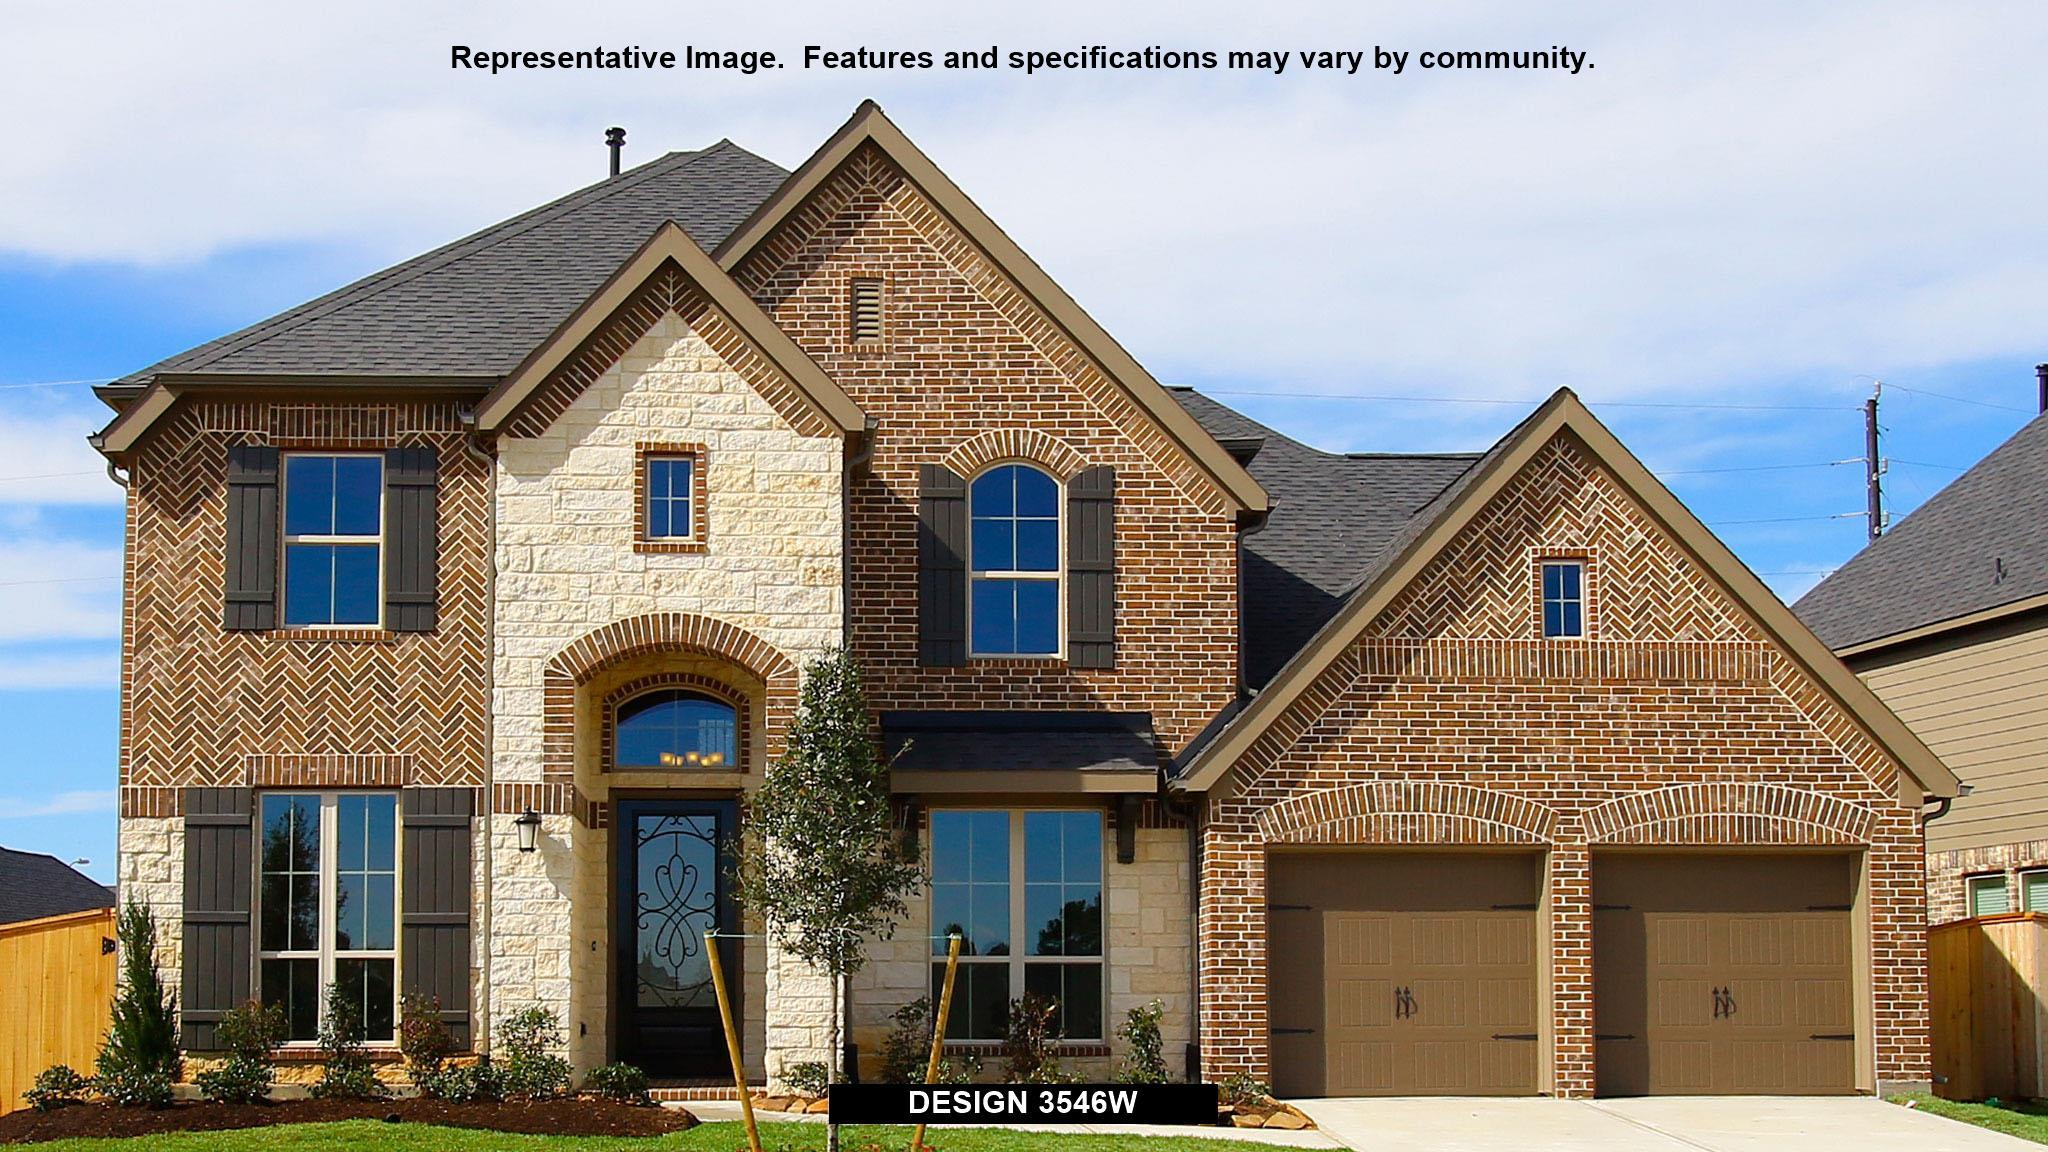 Single Family for Sale at Mill Creek Crossing 65' - 3546w 3004 Saddlehorn Drive Seguin, Texas 78155 United States